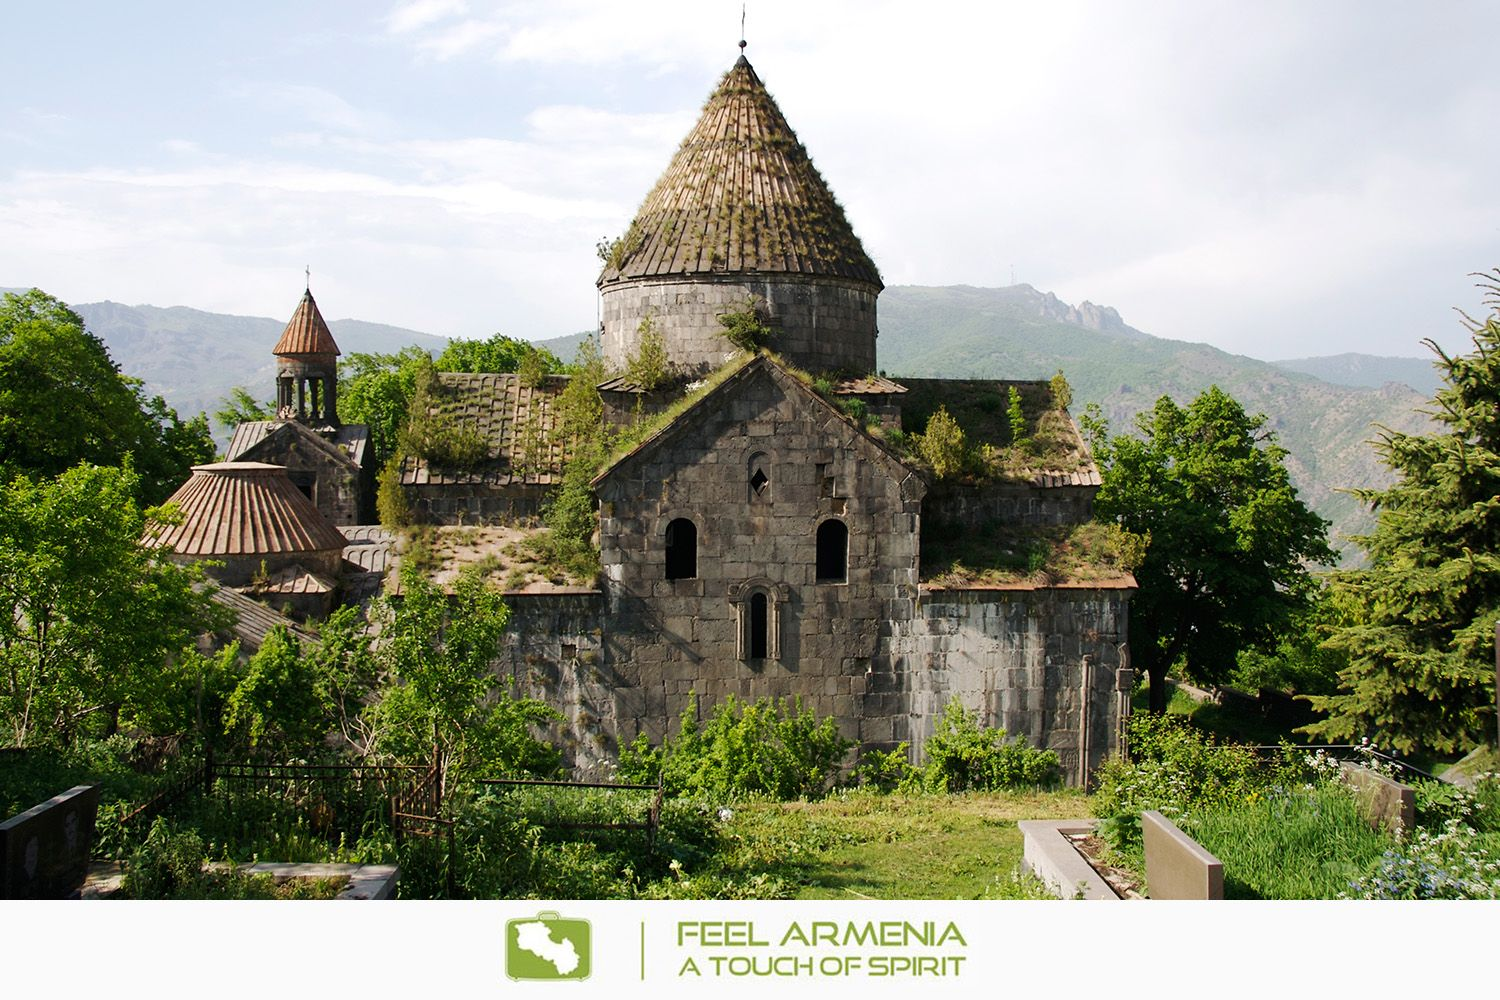 One Day tour to Haghpat and Sanahin one-day trip to Sanahin-Haghpat family trip to Armenia Sanahin monastery Armenia